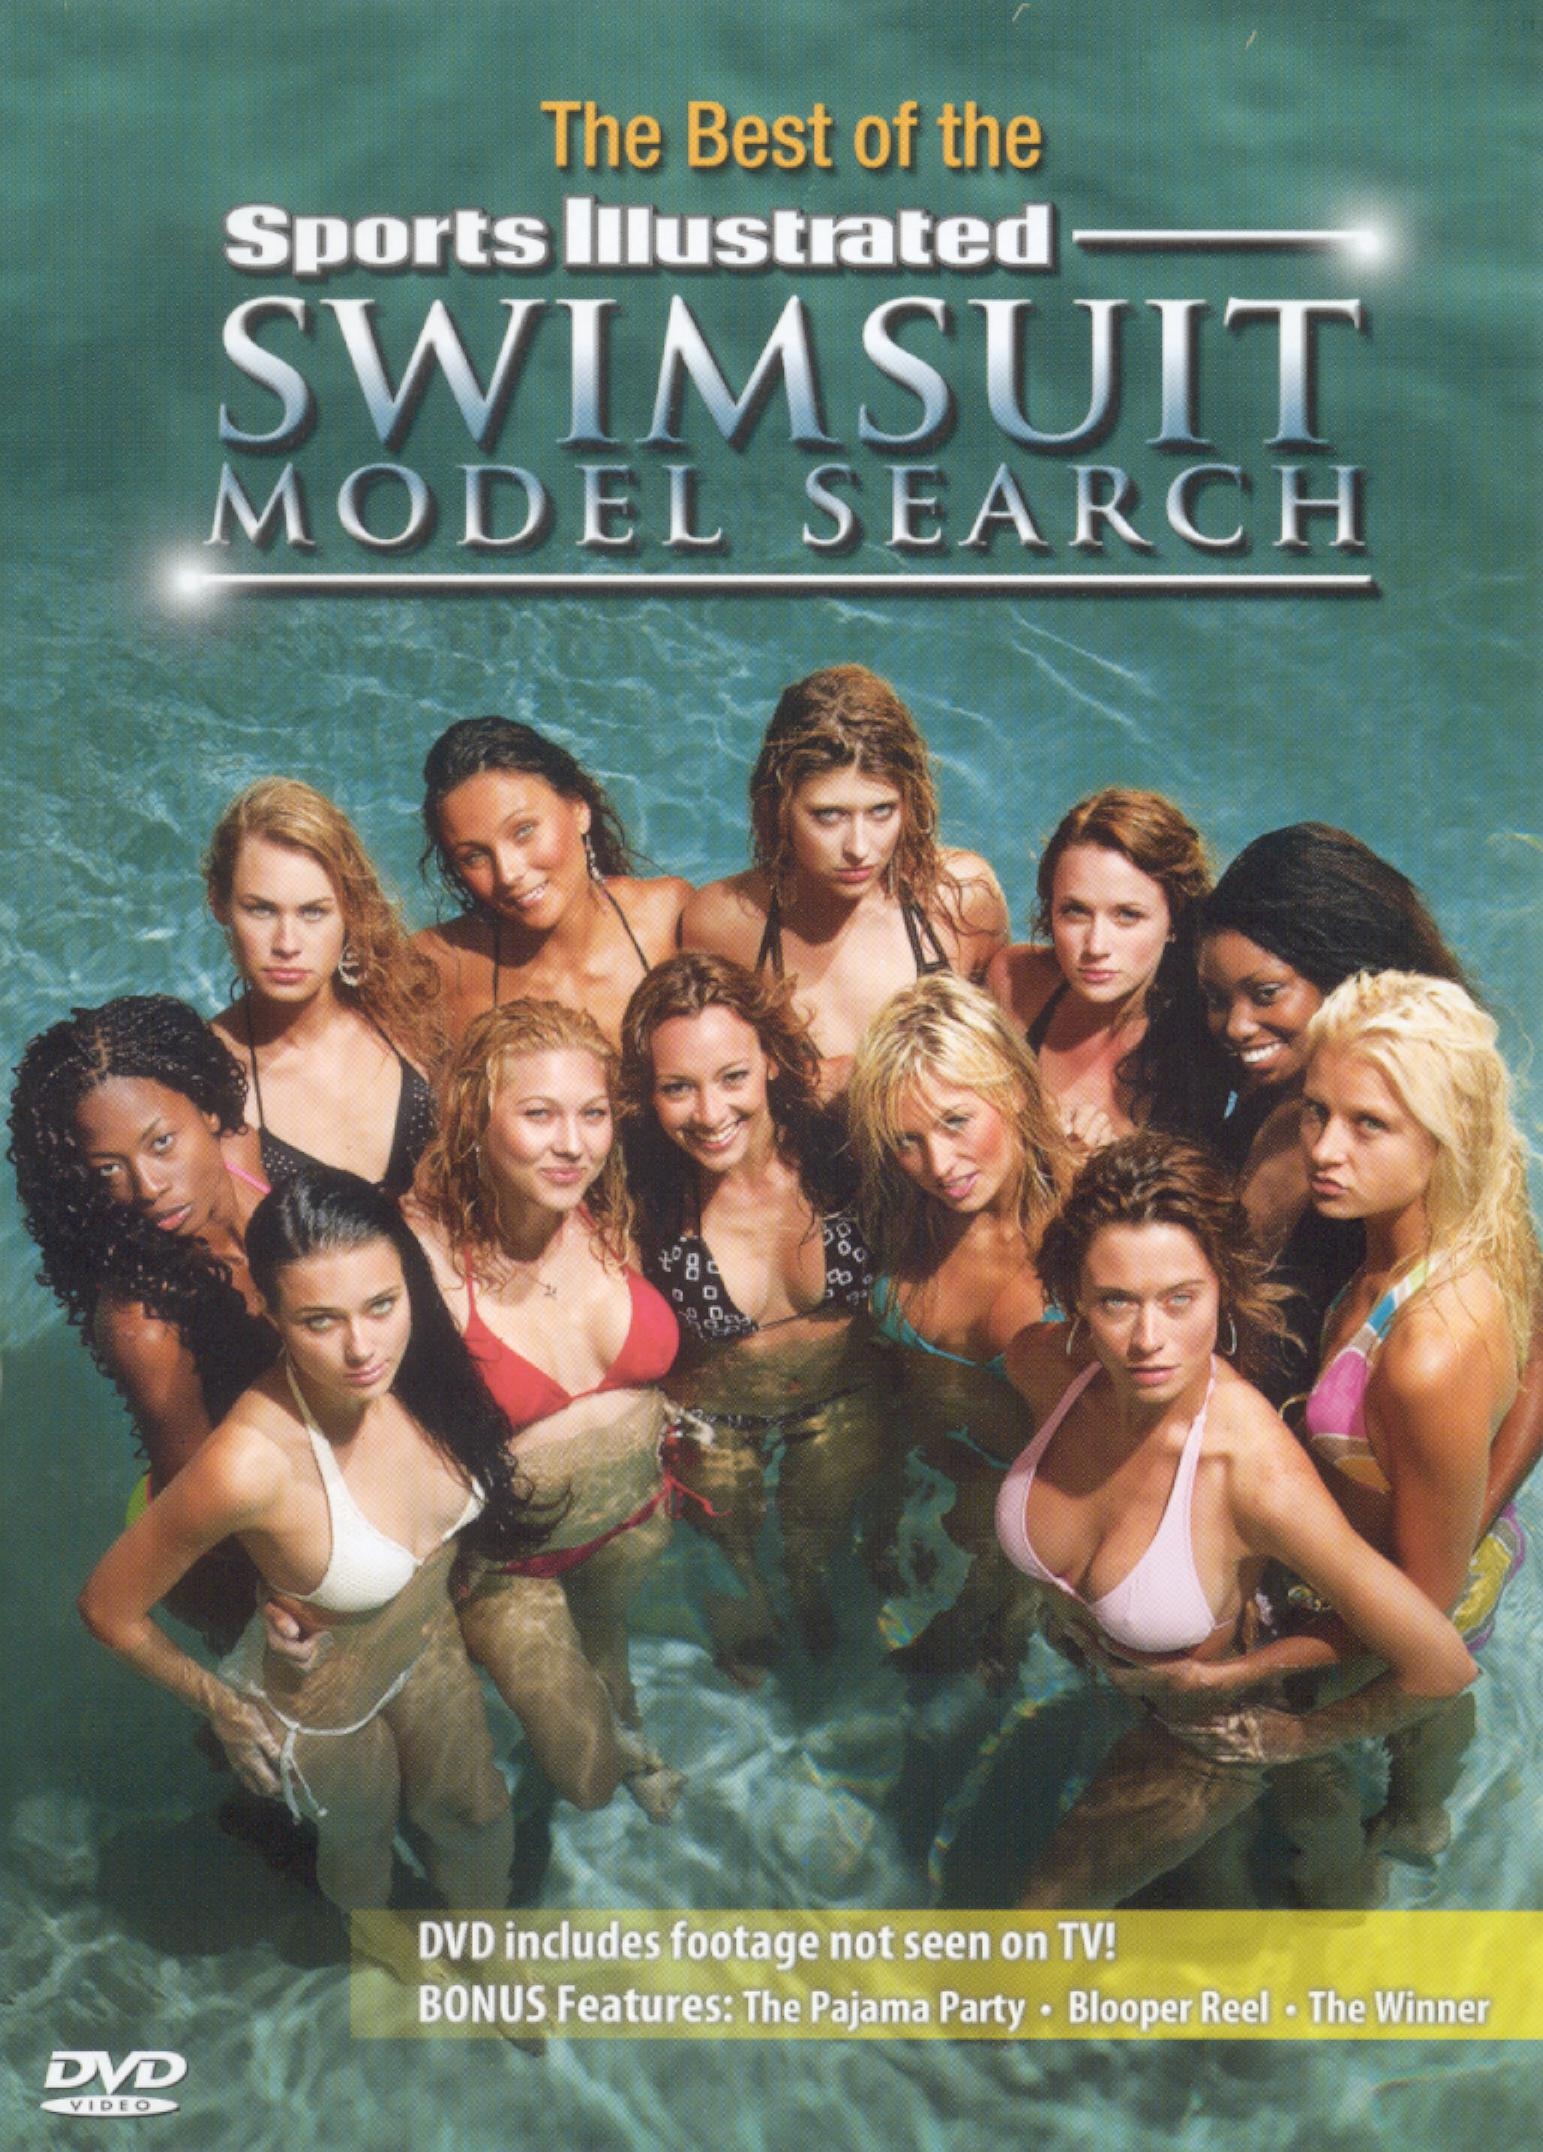 The Best of the Sports Illustrated Swimsuit Model Search